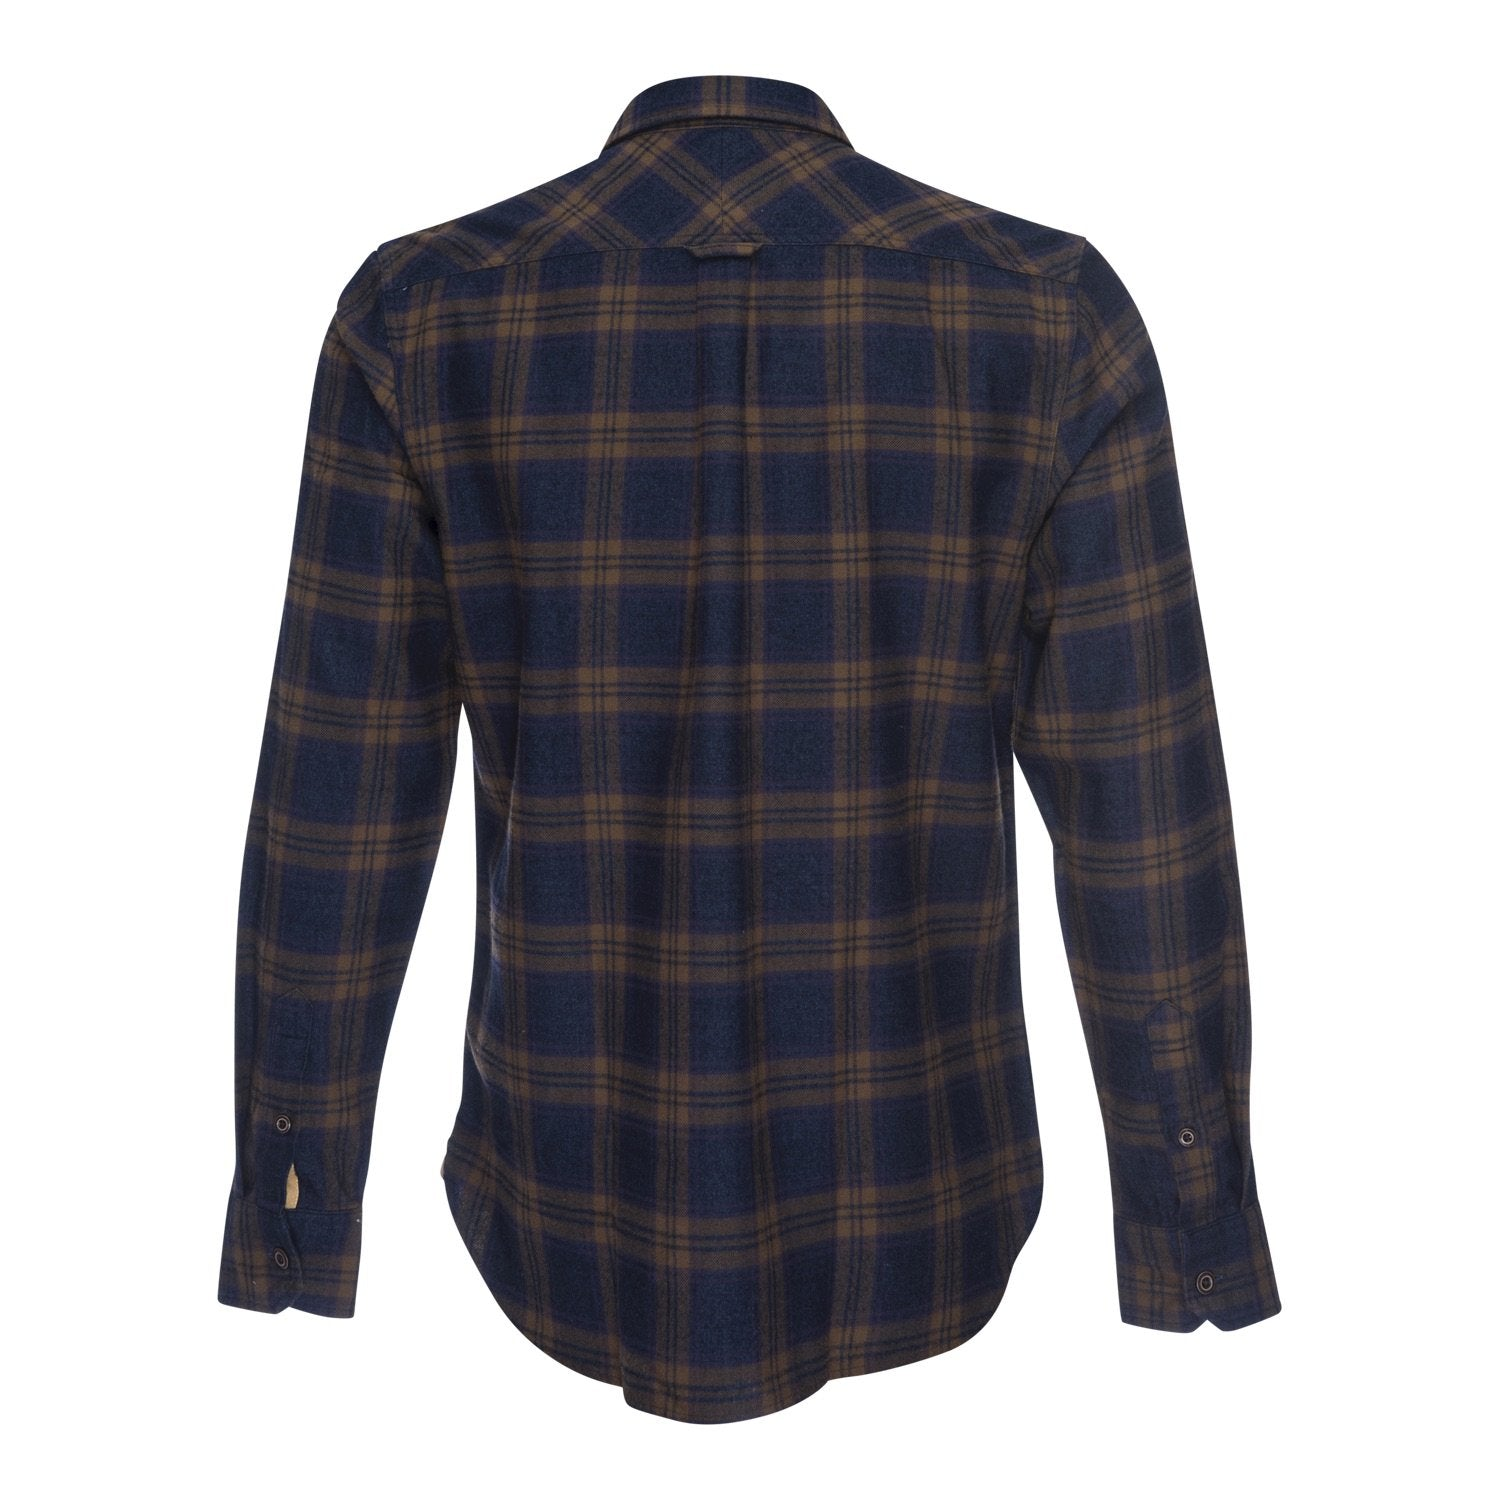 Truman Outdoor Shirt in Purple Plaid